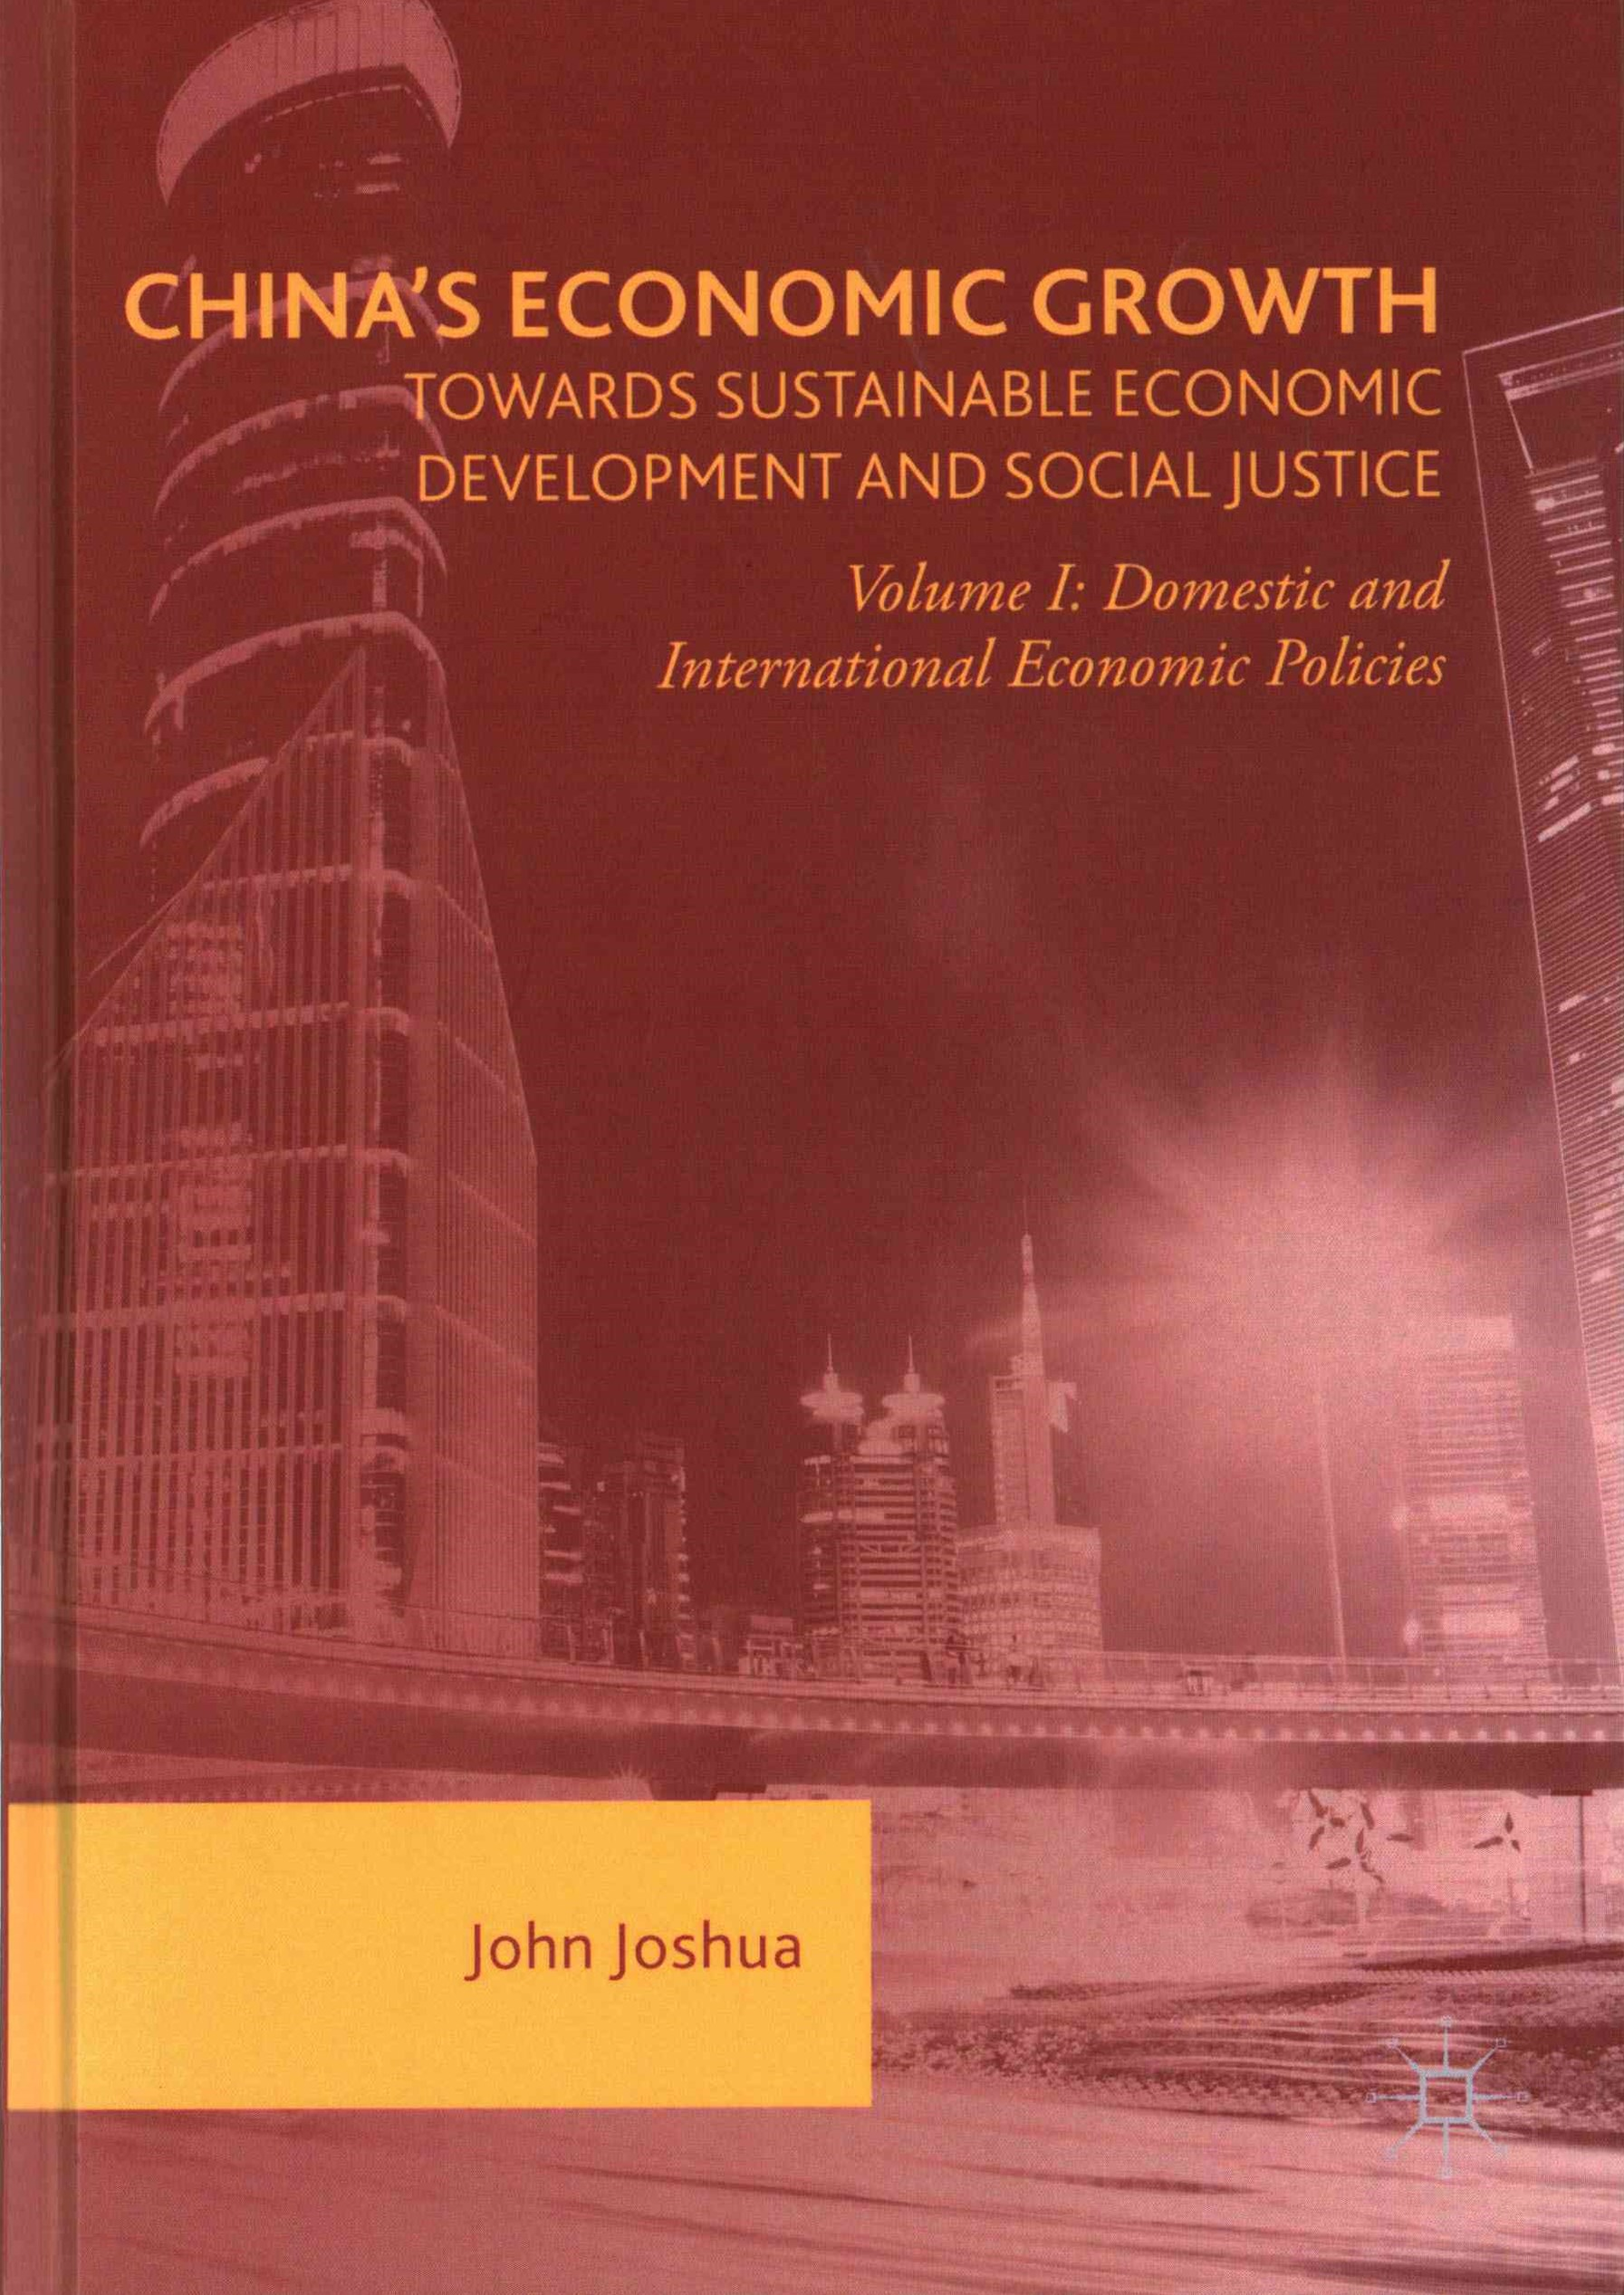 China's Economic Growth: Towards Sustainable Economic Development and Social Justice: Domestic and International Economic Policies